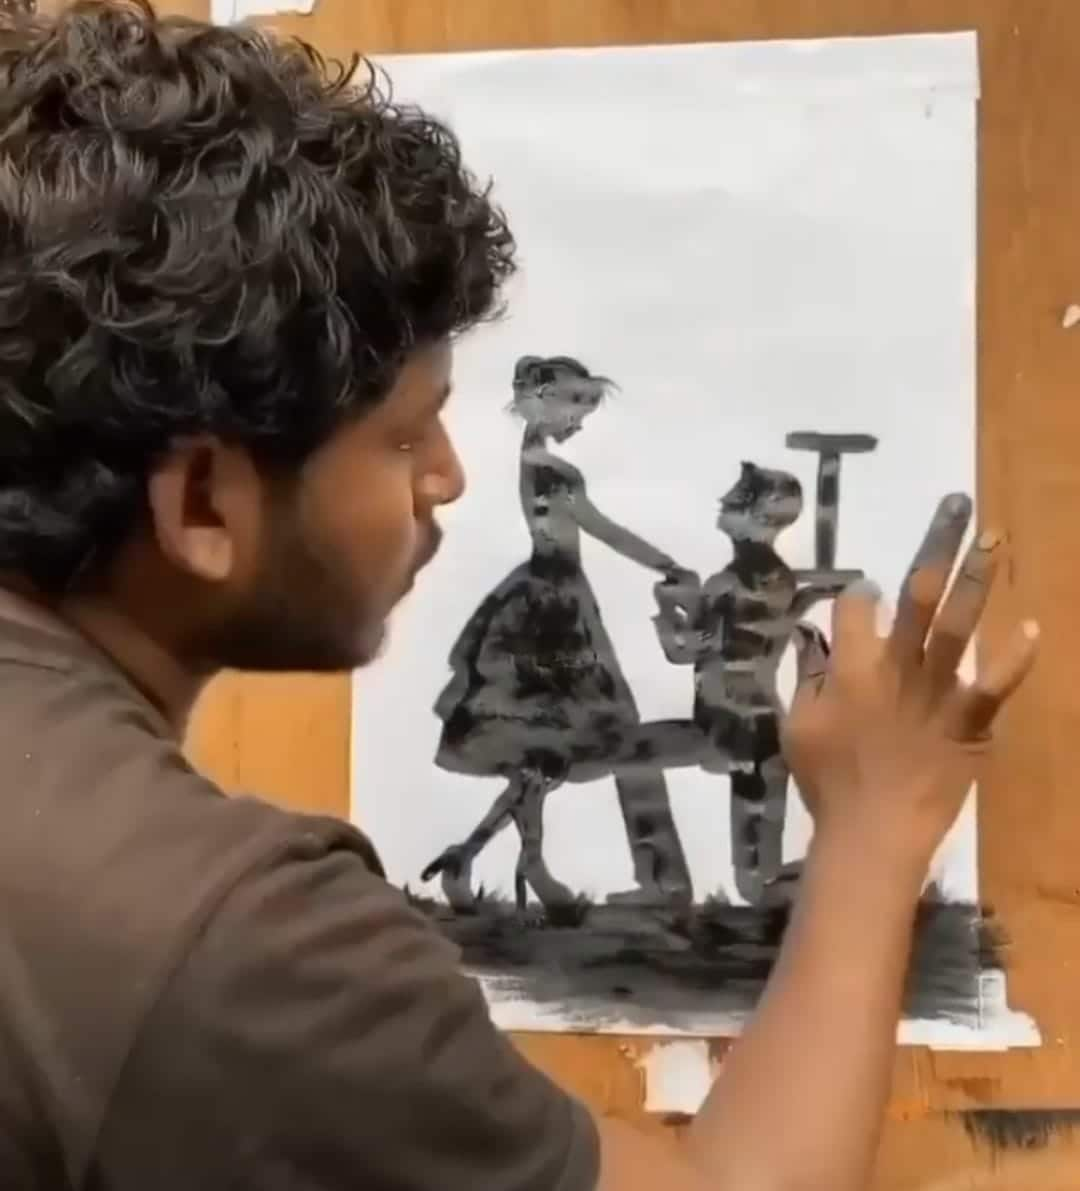 Mahesh Kapse who gained 1.3 million users on TikTok within just two months through his paintings, was another disappointed creator after the ban.